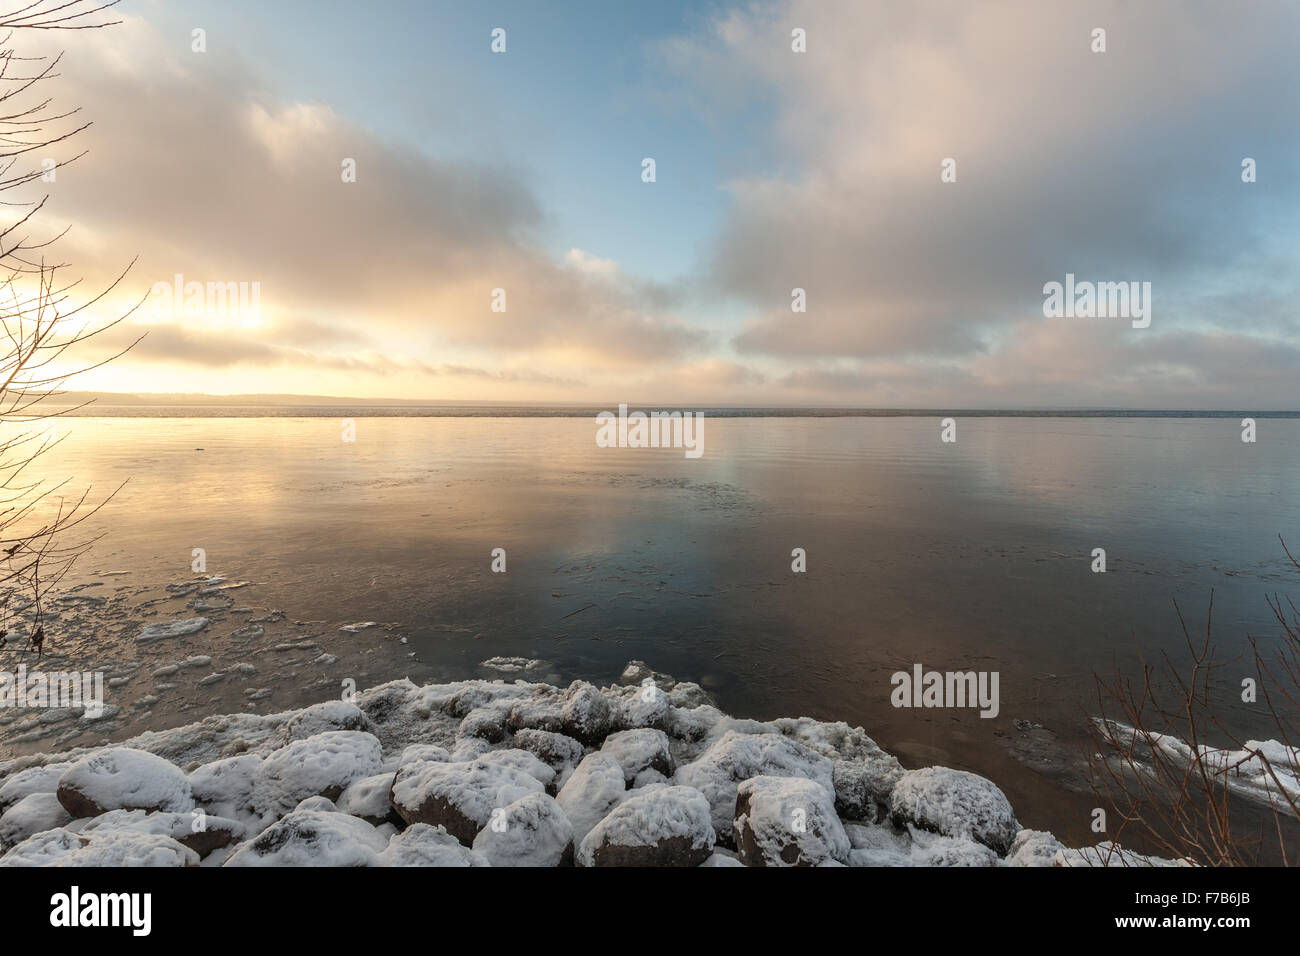 Pereslavl-Zalessky, Russia - November 26, 2015: clouds over the freezing lake. - Stock Image